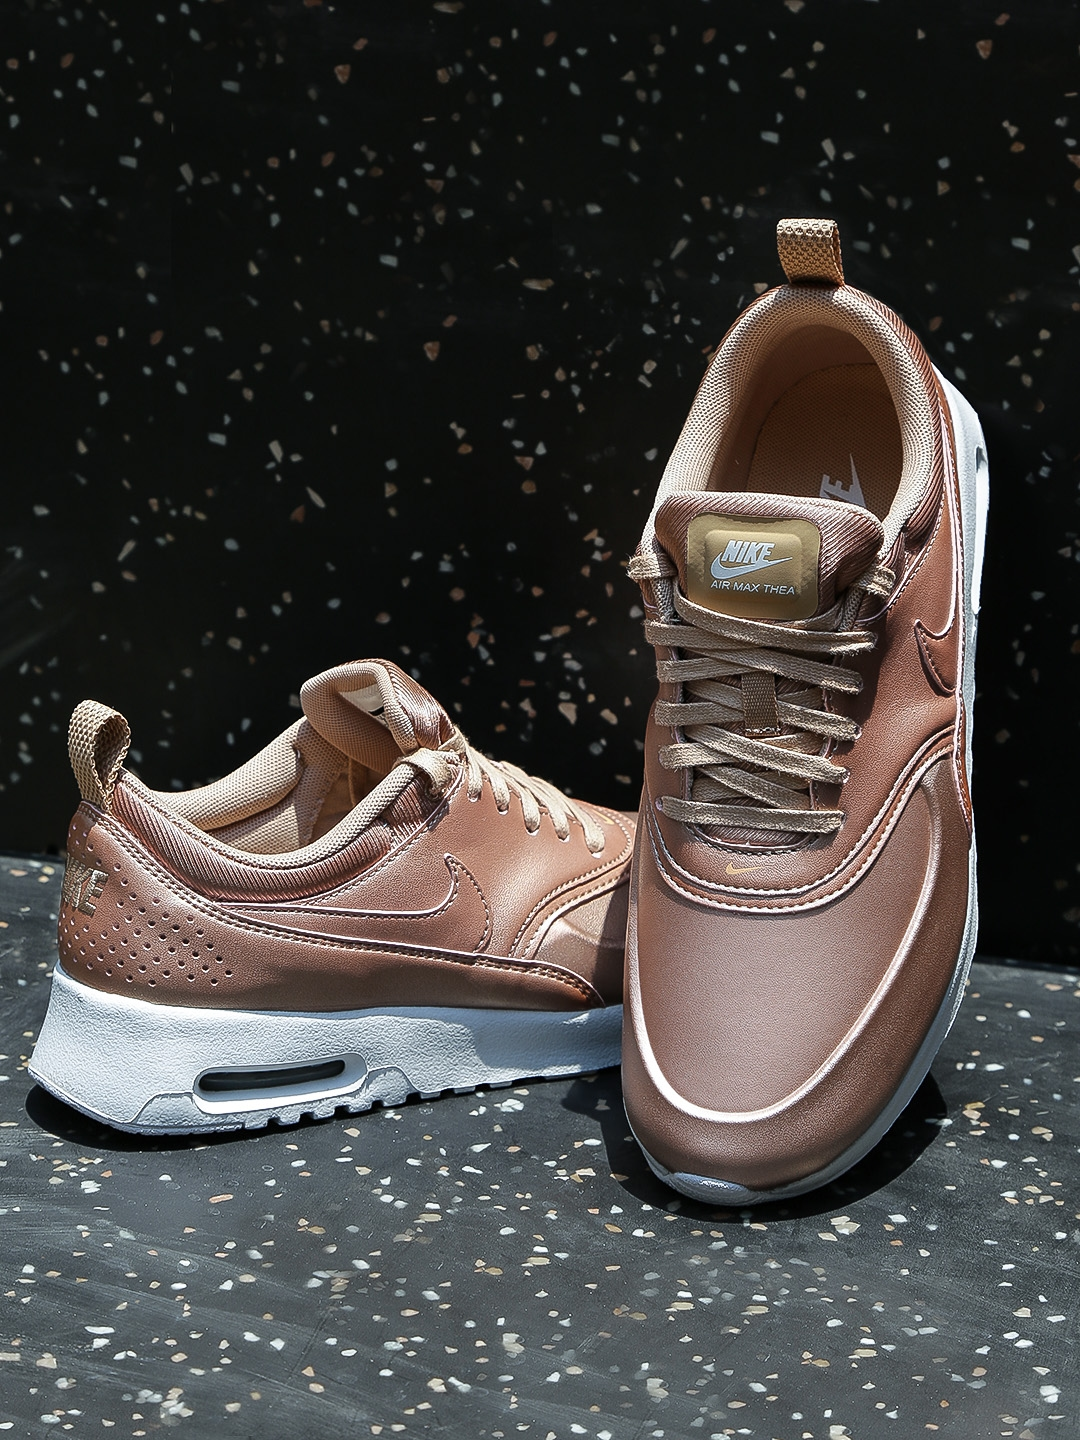 new arrivals dd230 952b3 Nike Women Rose Gold-Toned Air Max Thea Sneakers